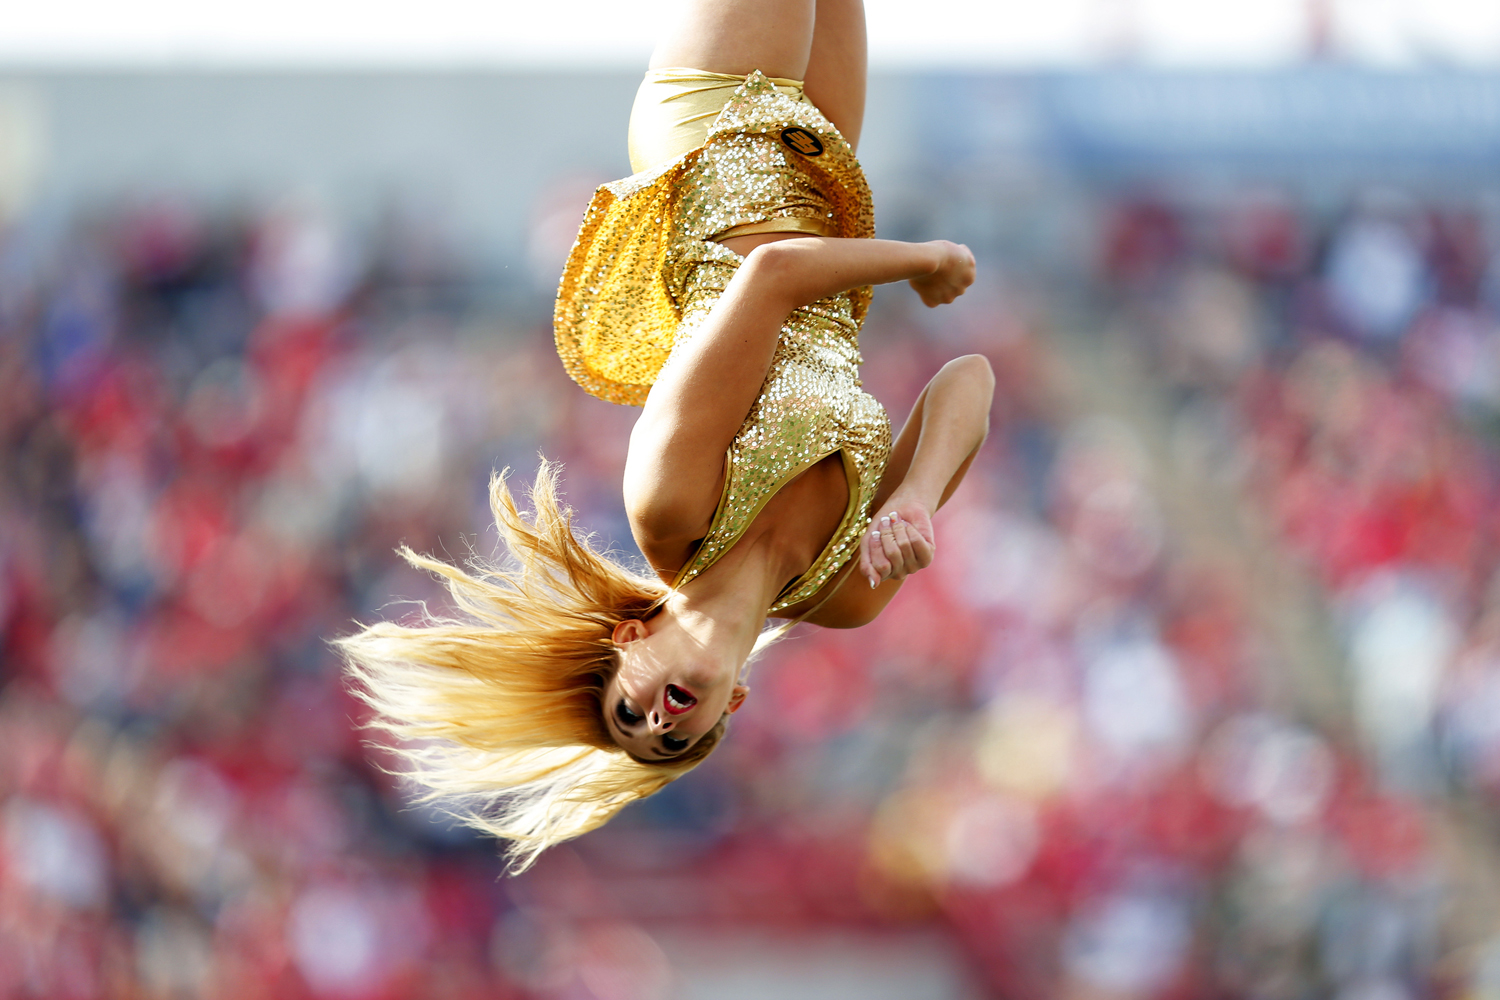 Sept. 1, 2014. A cheerleader for the Edmonton Eskimos goes flying through the air while they played the Calgary Stampeders during their CFL football game at McMahon Stadium in Calgary, Alberta, Canada.